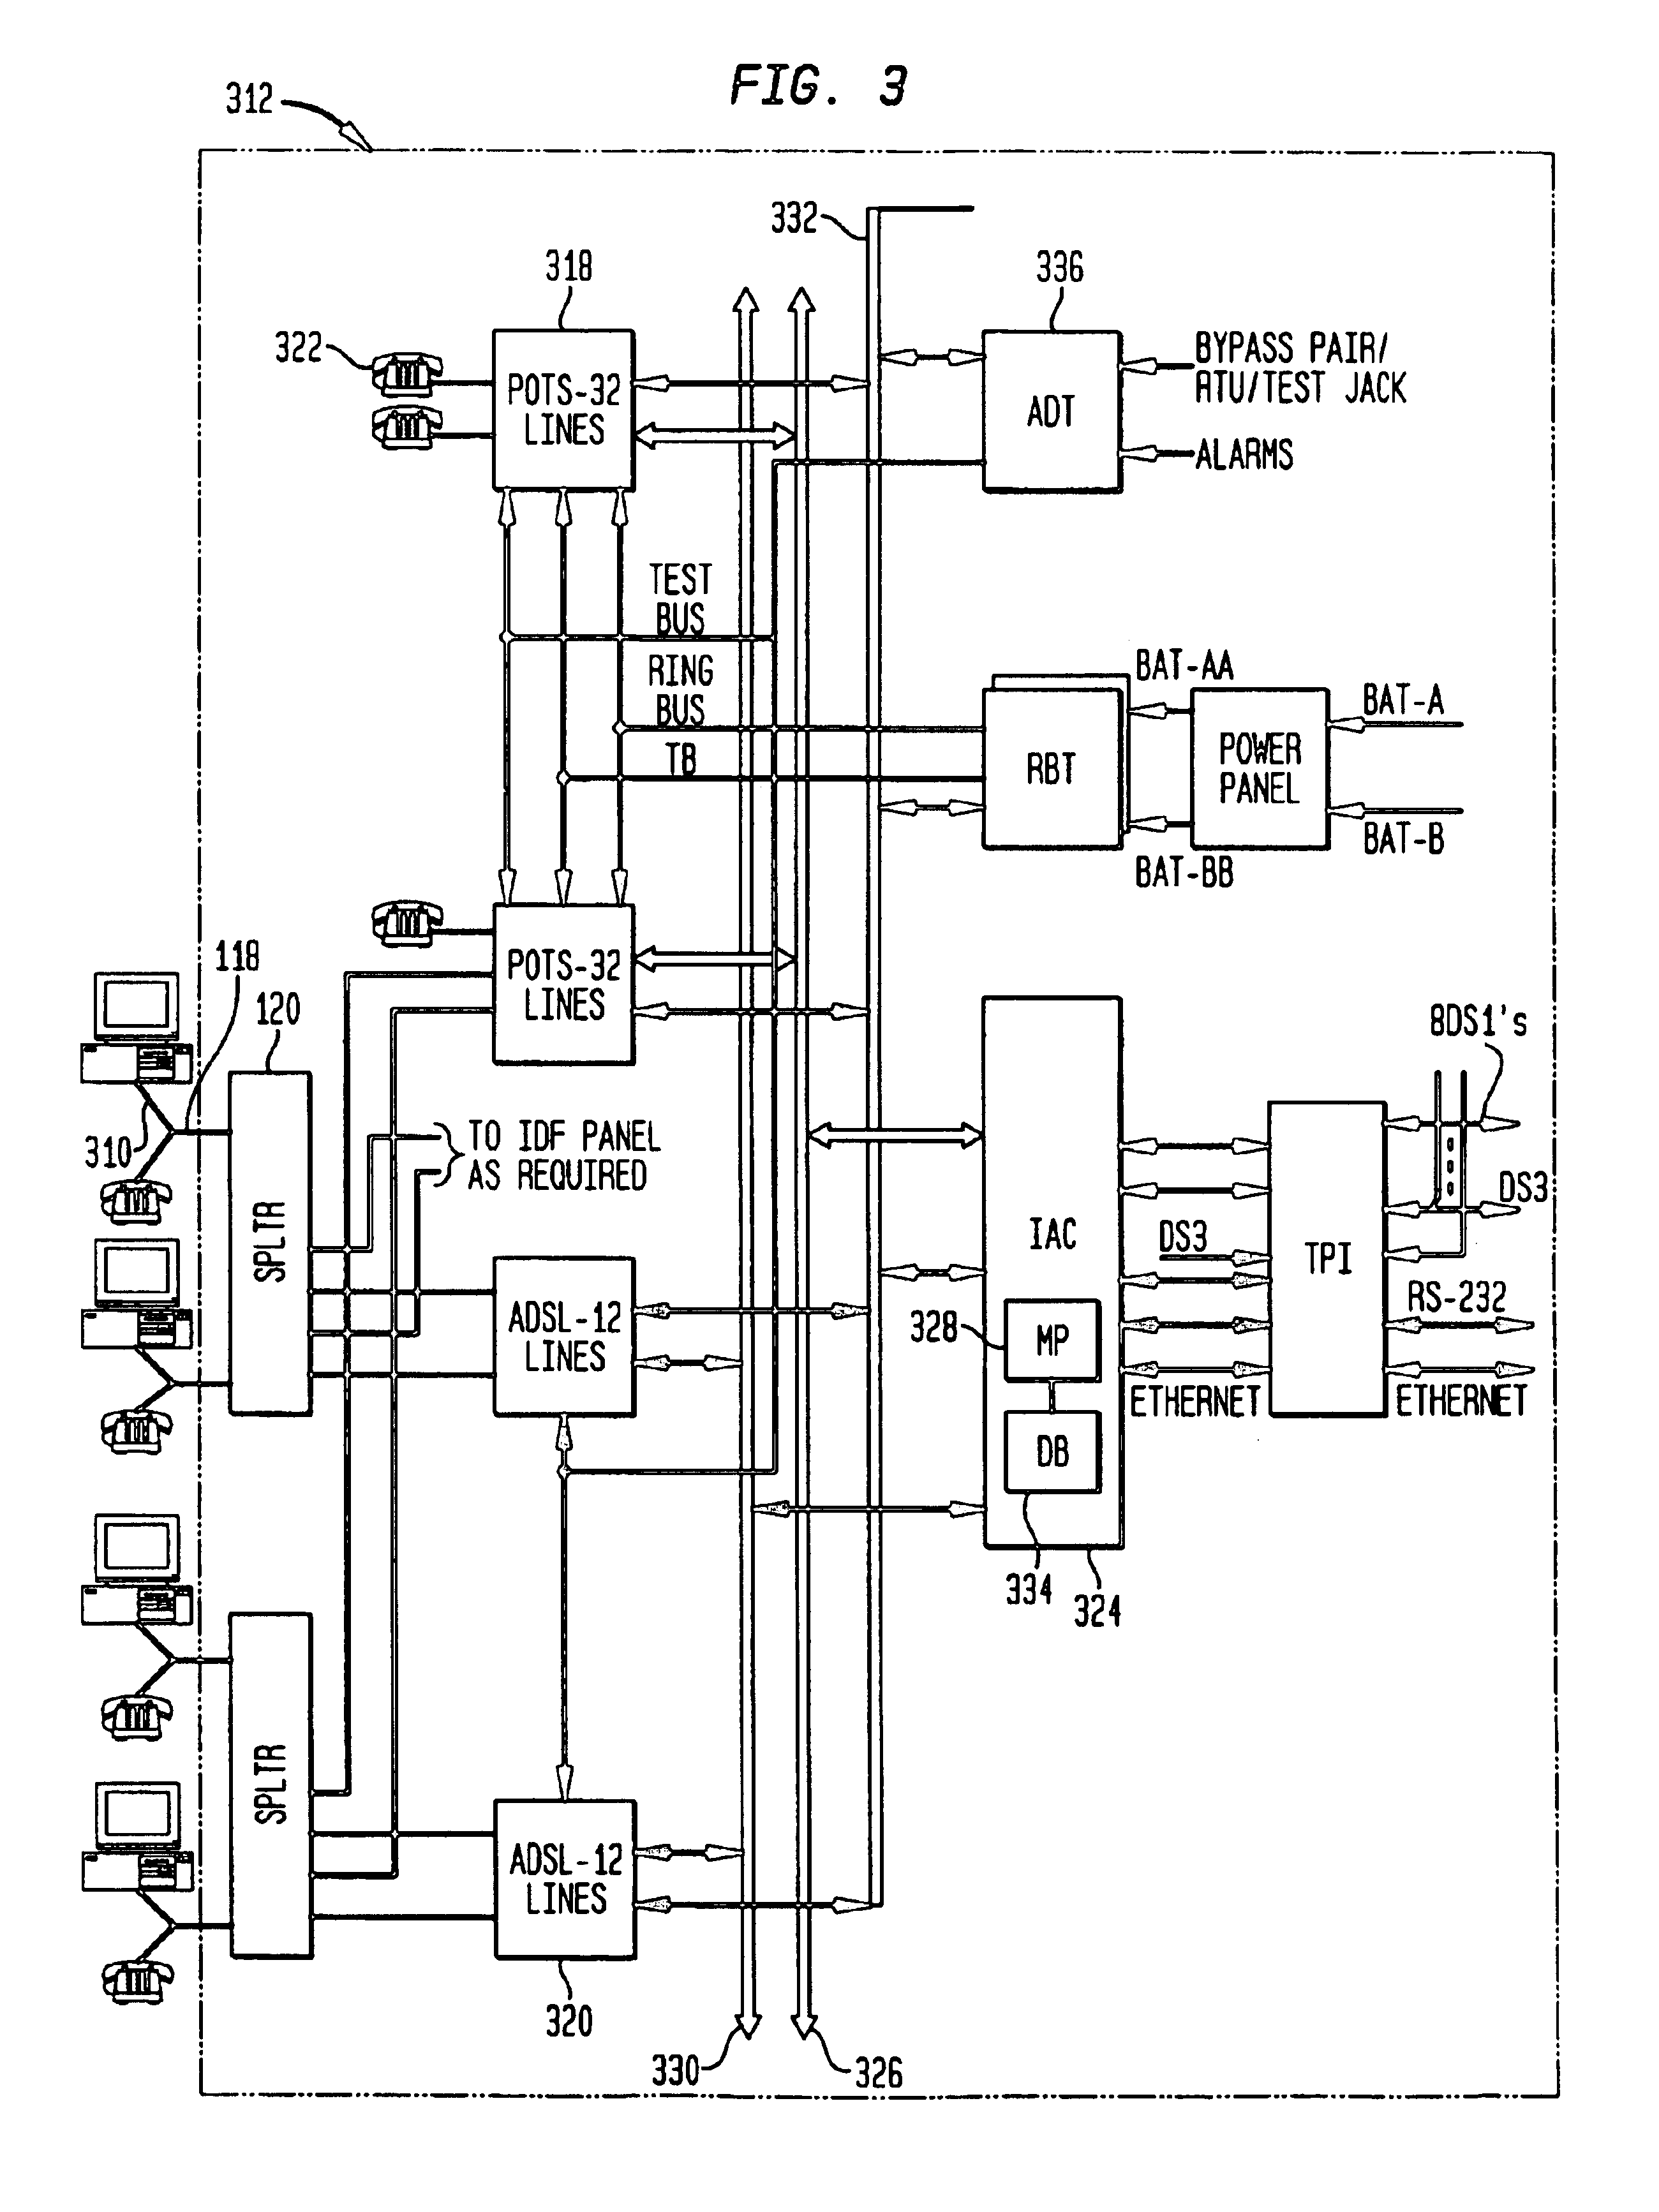 Magnificent Autopage Wiring Diagram Ornament - Best Images for ...